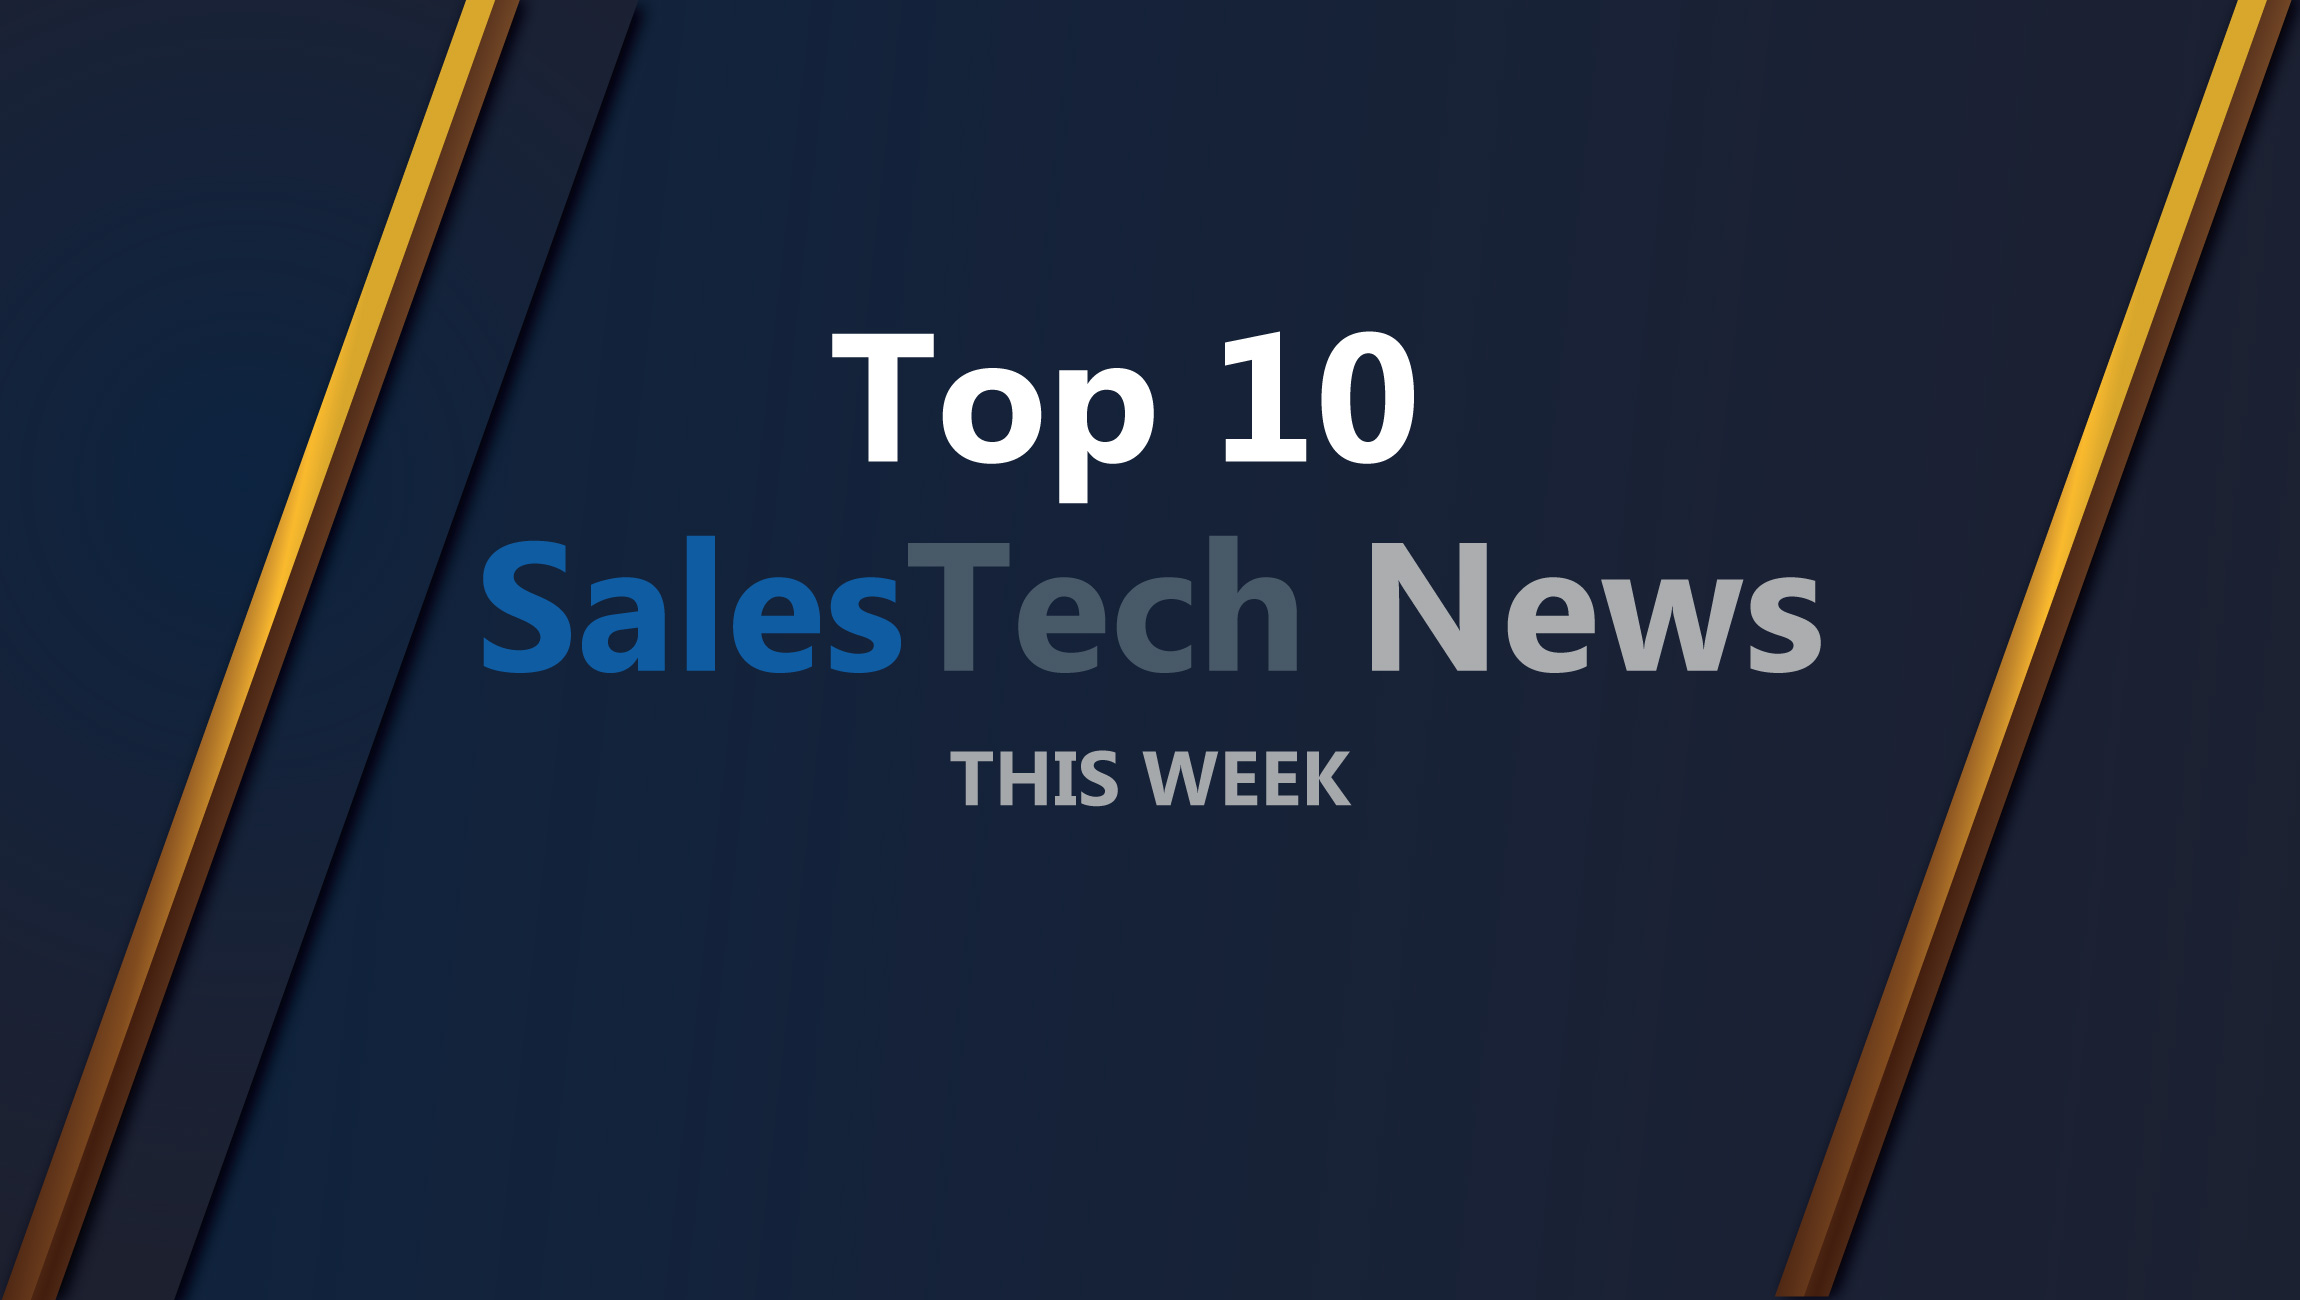 Top 10 STS news for November 15